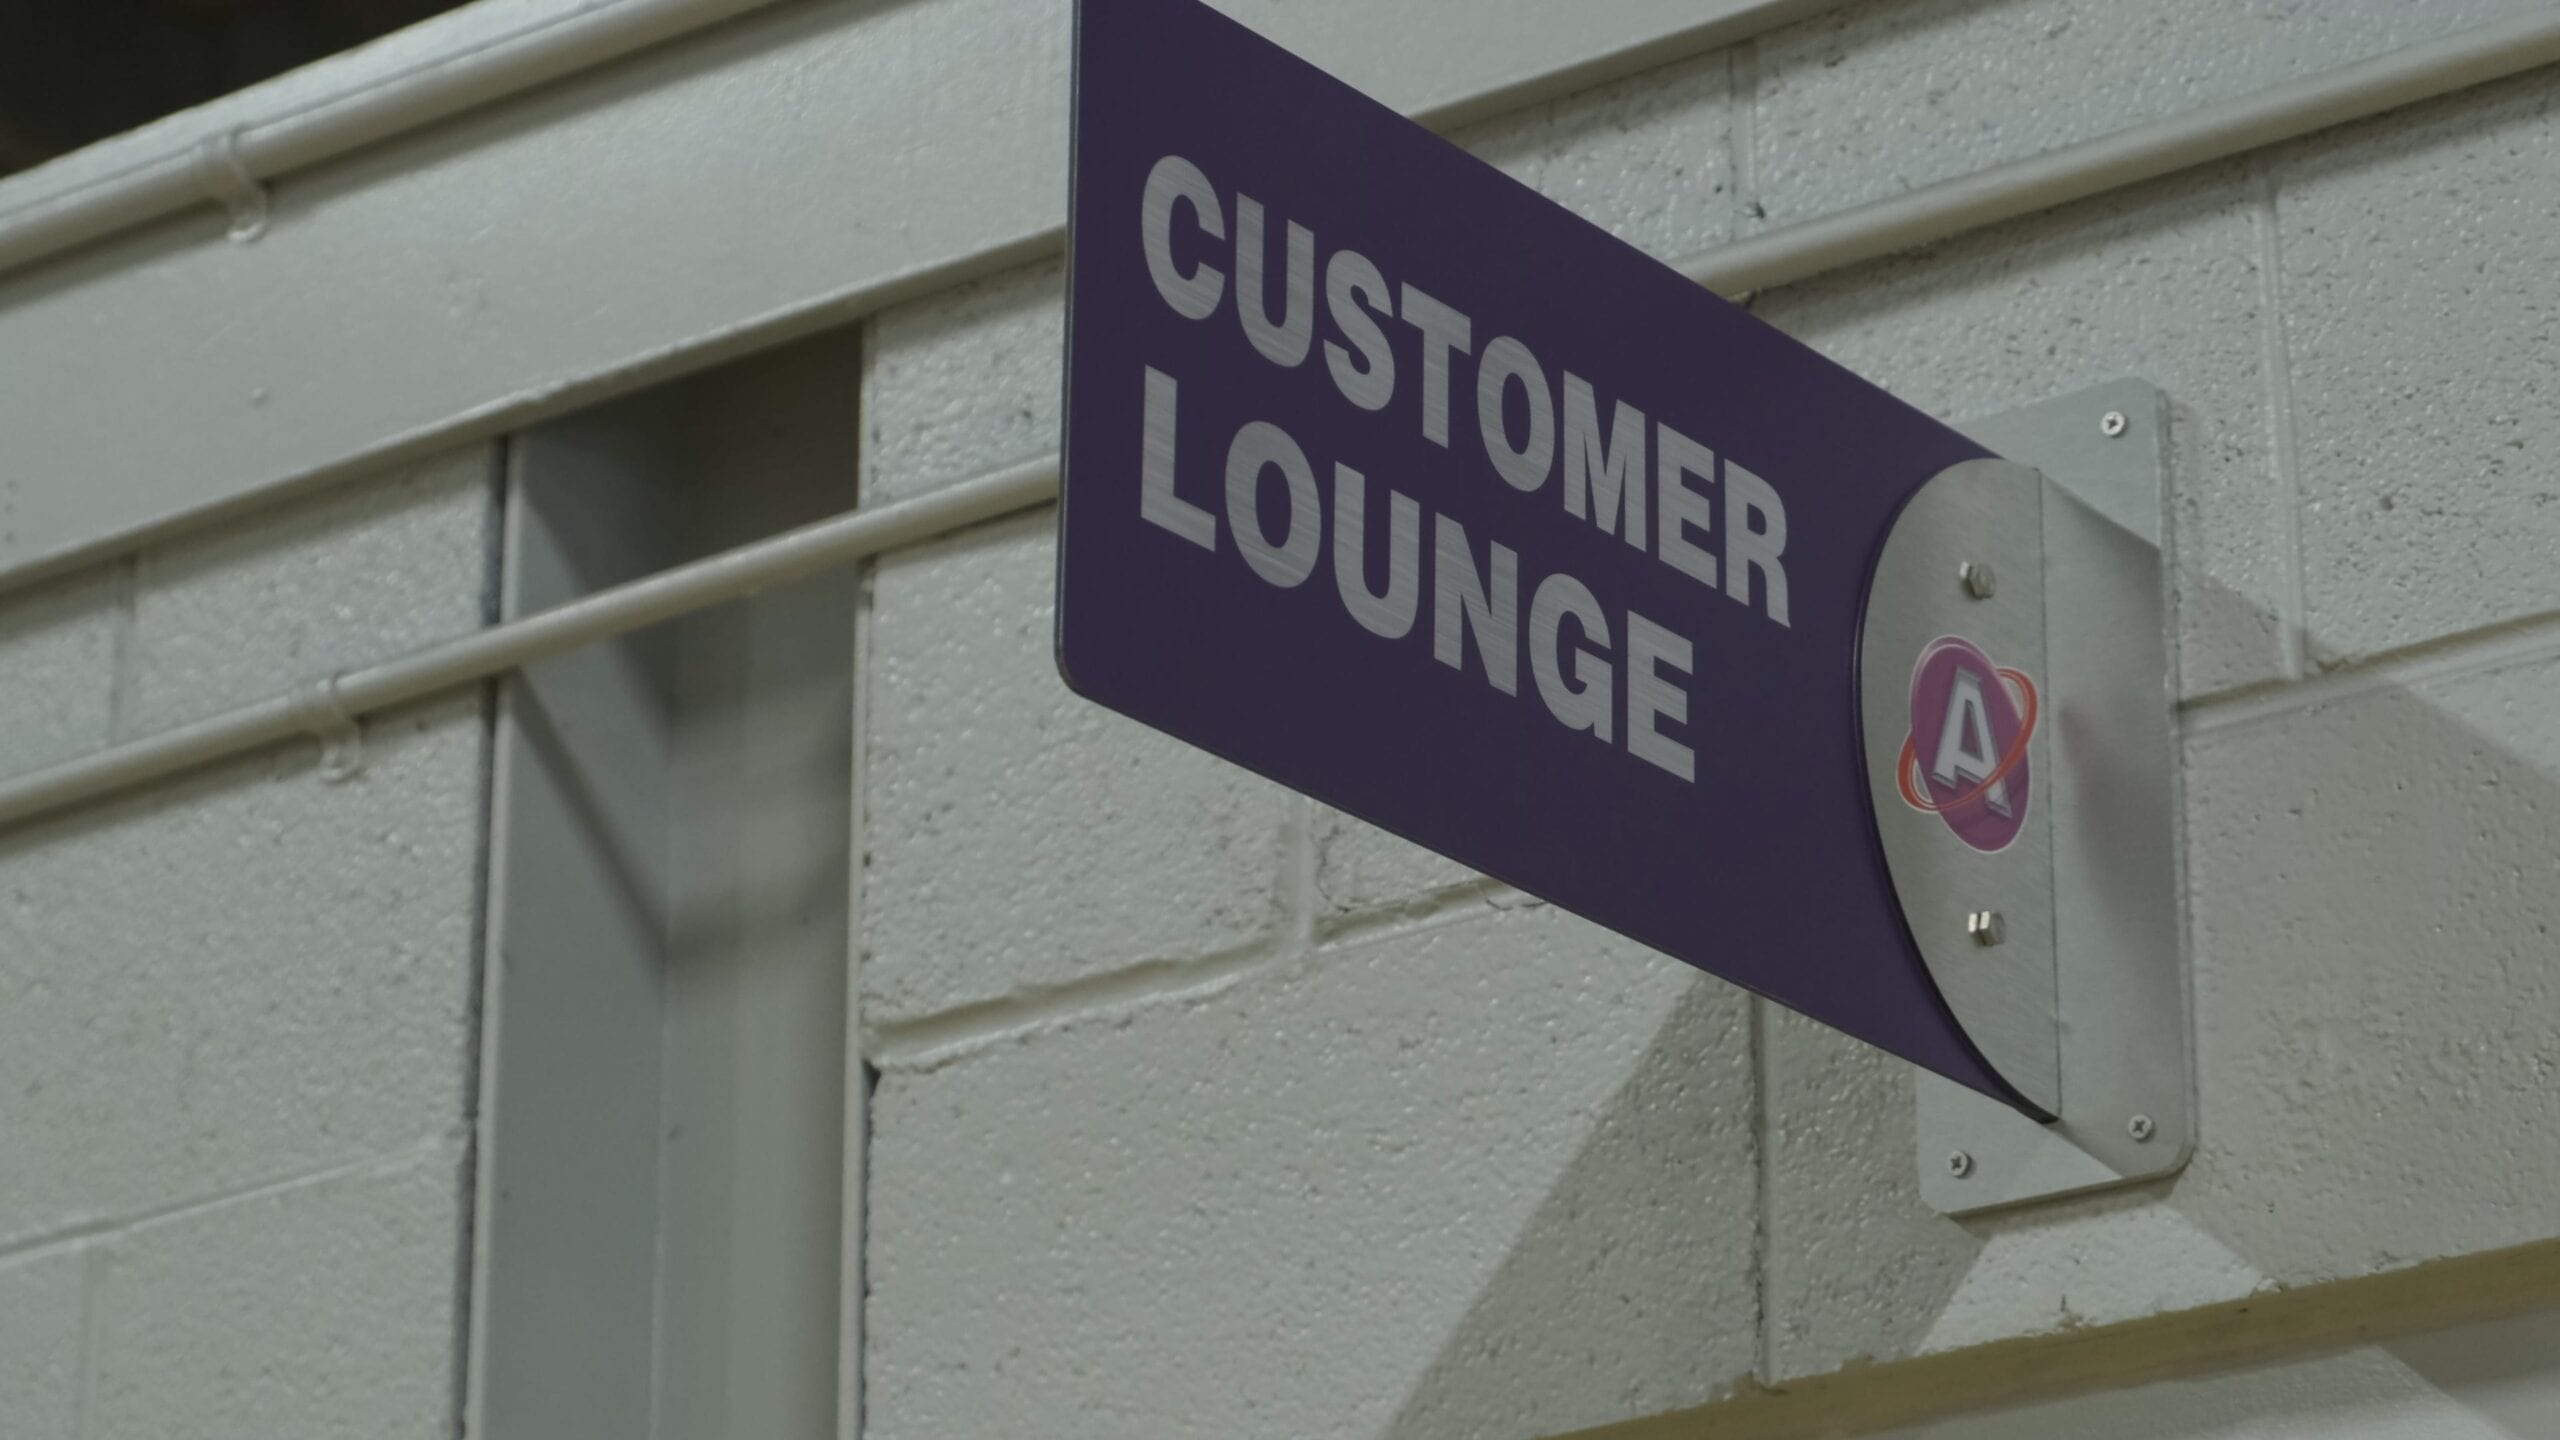 Sign outside the customer lounge.